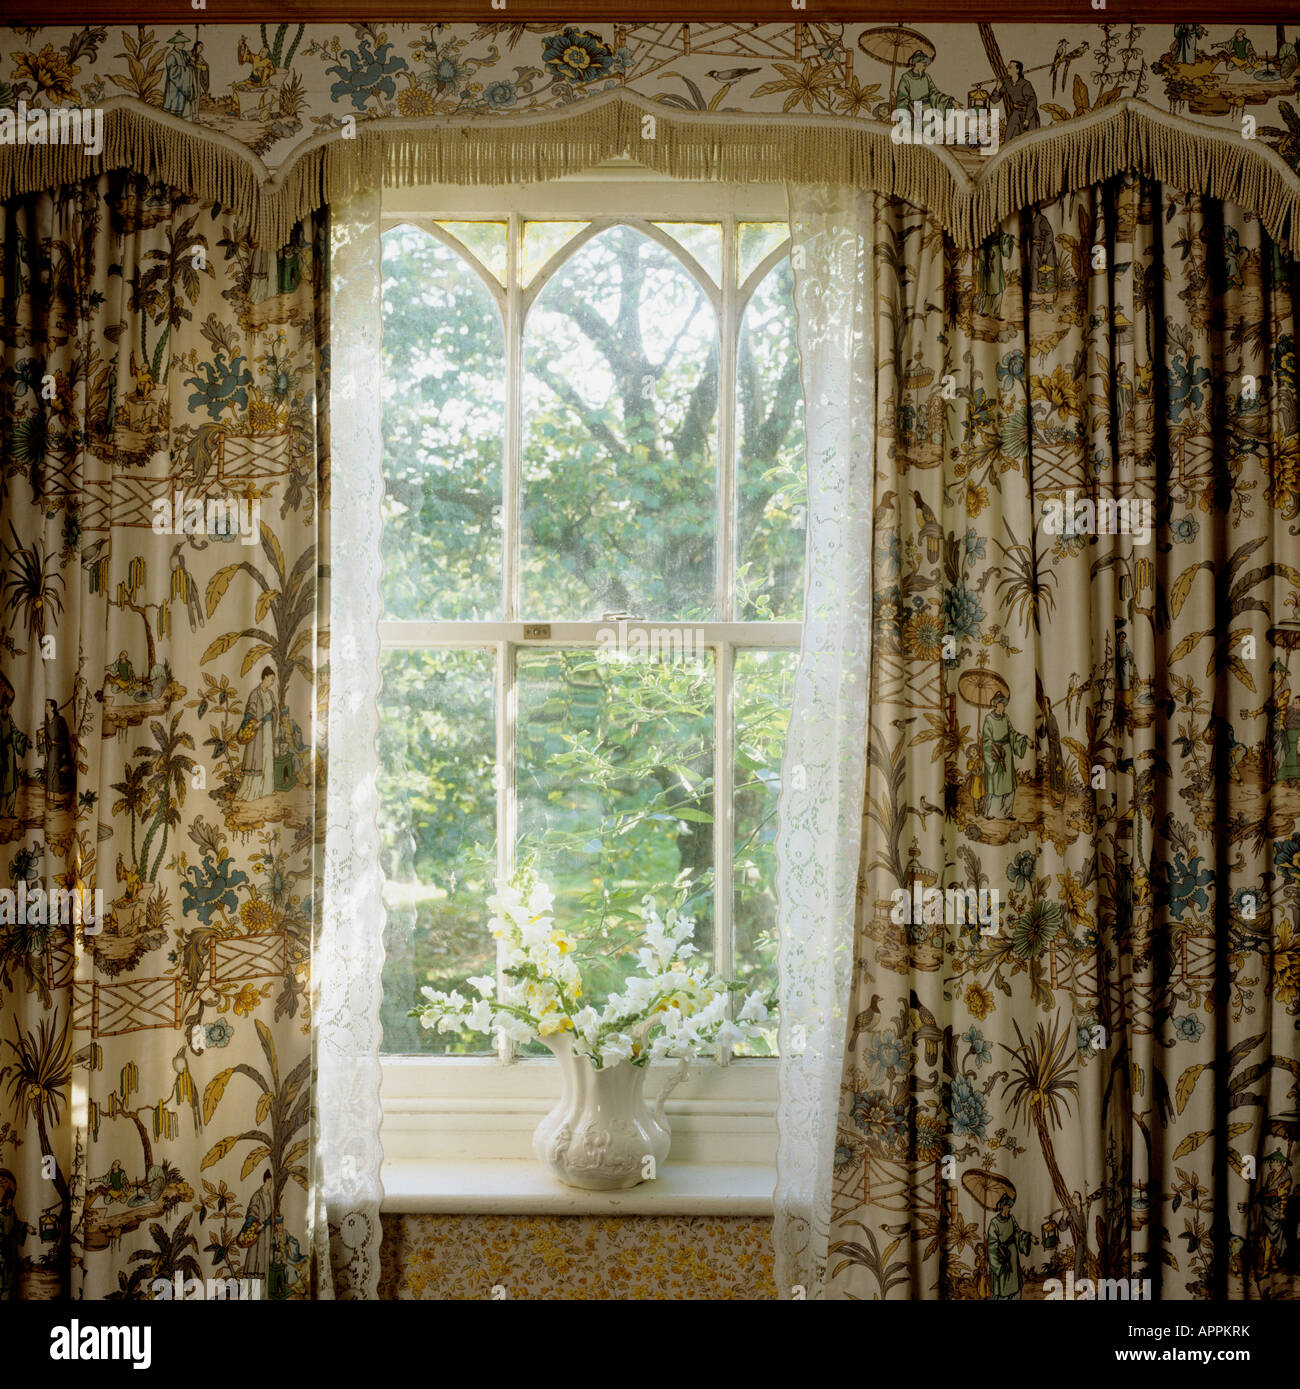 Cottage curtains - Stock Photo Window Of Cottage With Patterned Oriental Curtains And Pelmet